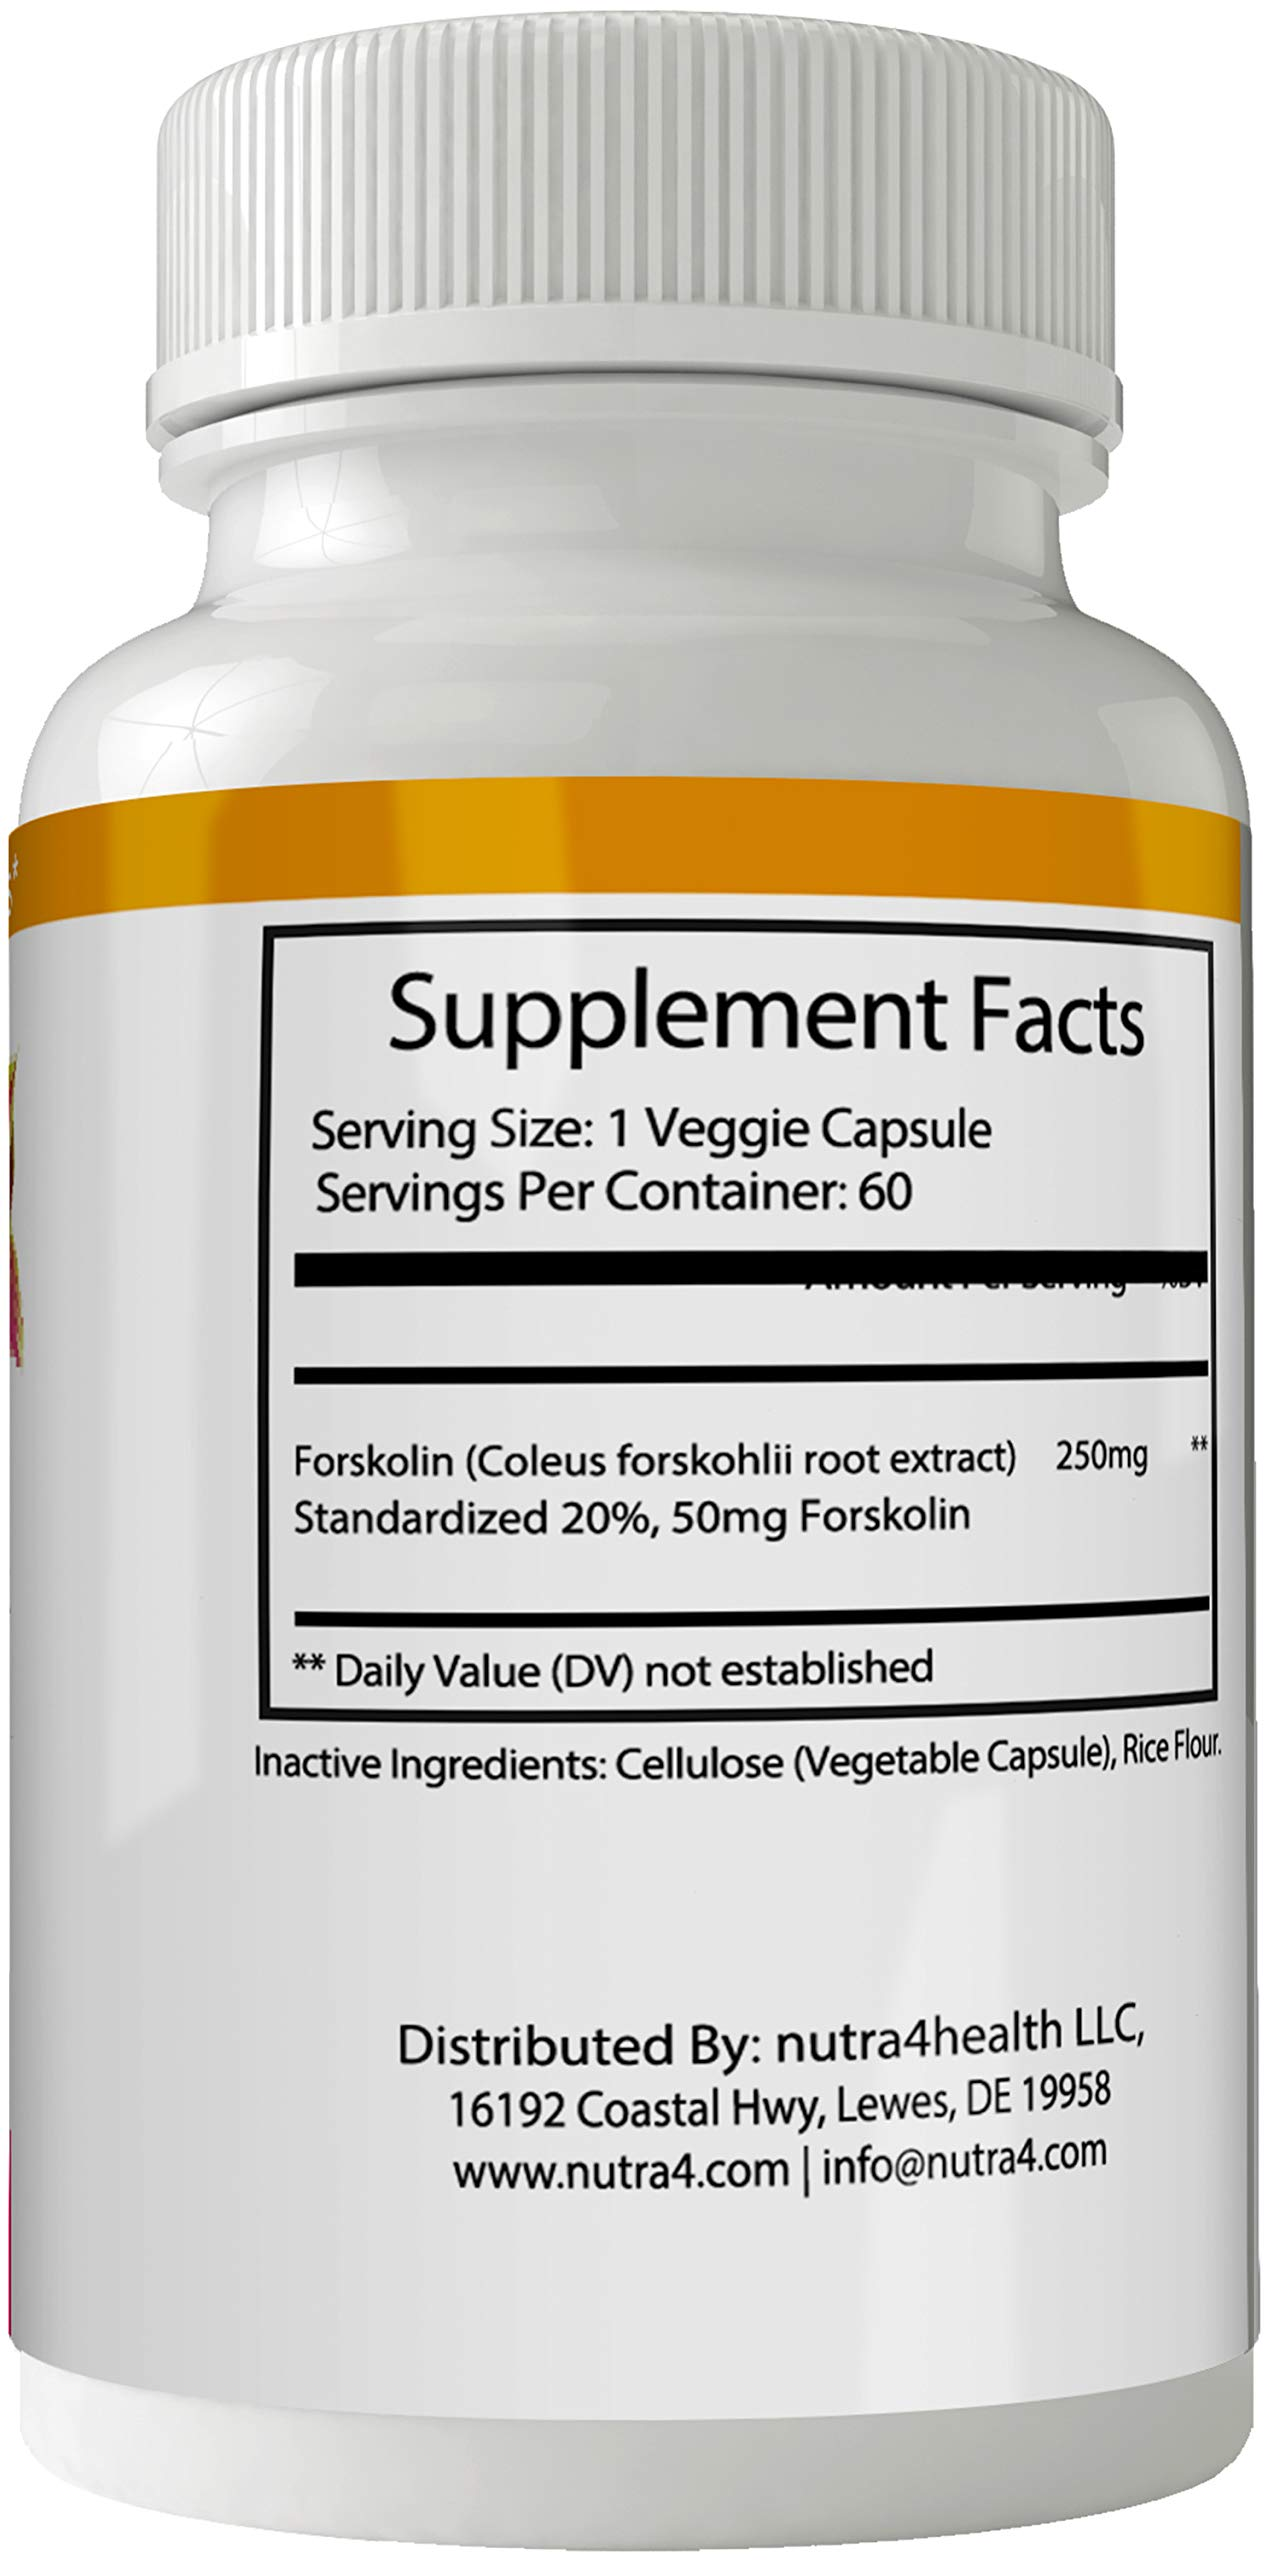 True Trim Forskolin for Weight Loss Pills Tablets Supplement - Capsules with Natural High Quality Pure Forskolin Extract Diet Pills by nutra4health LLC (Image #2)